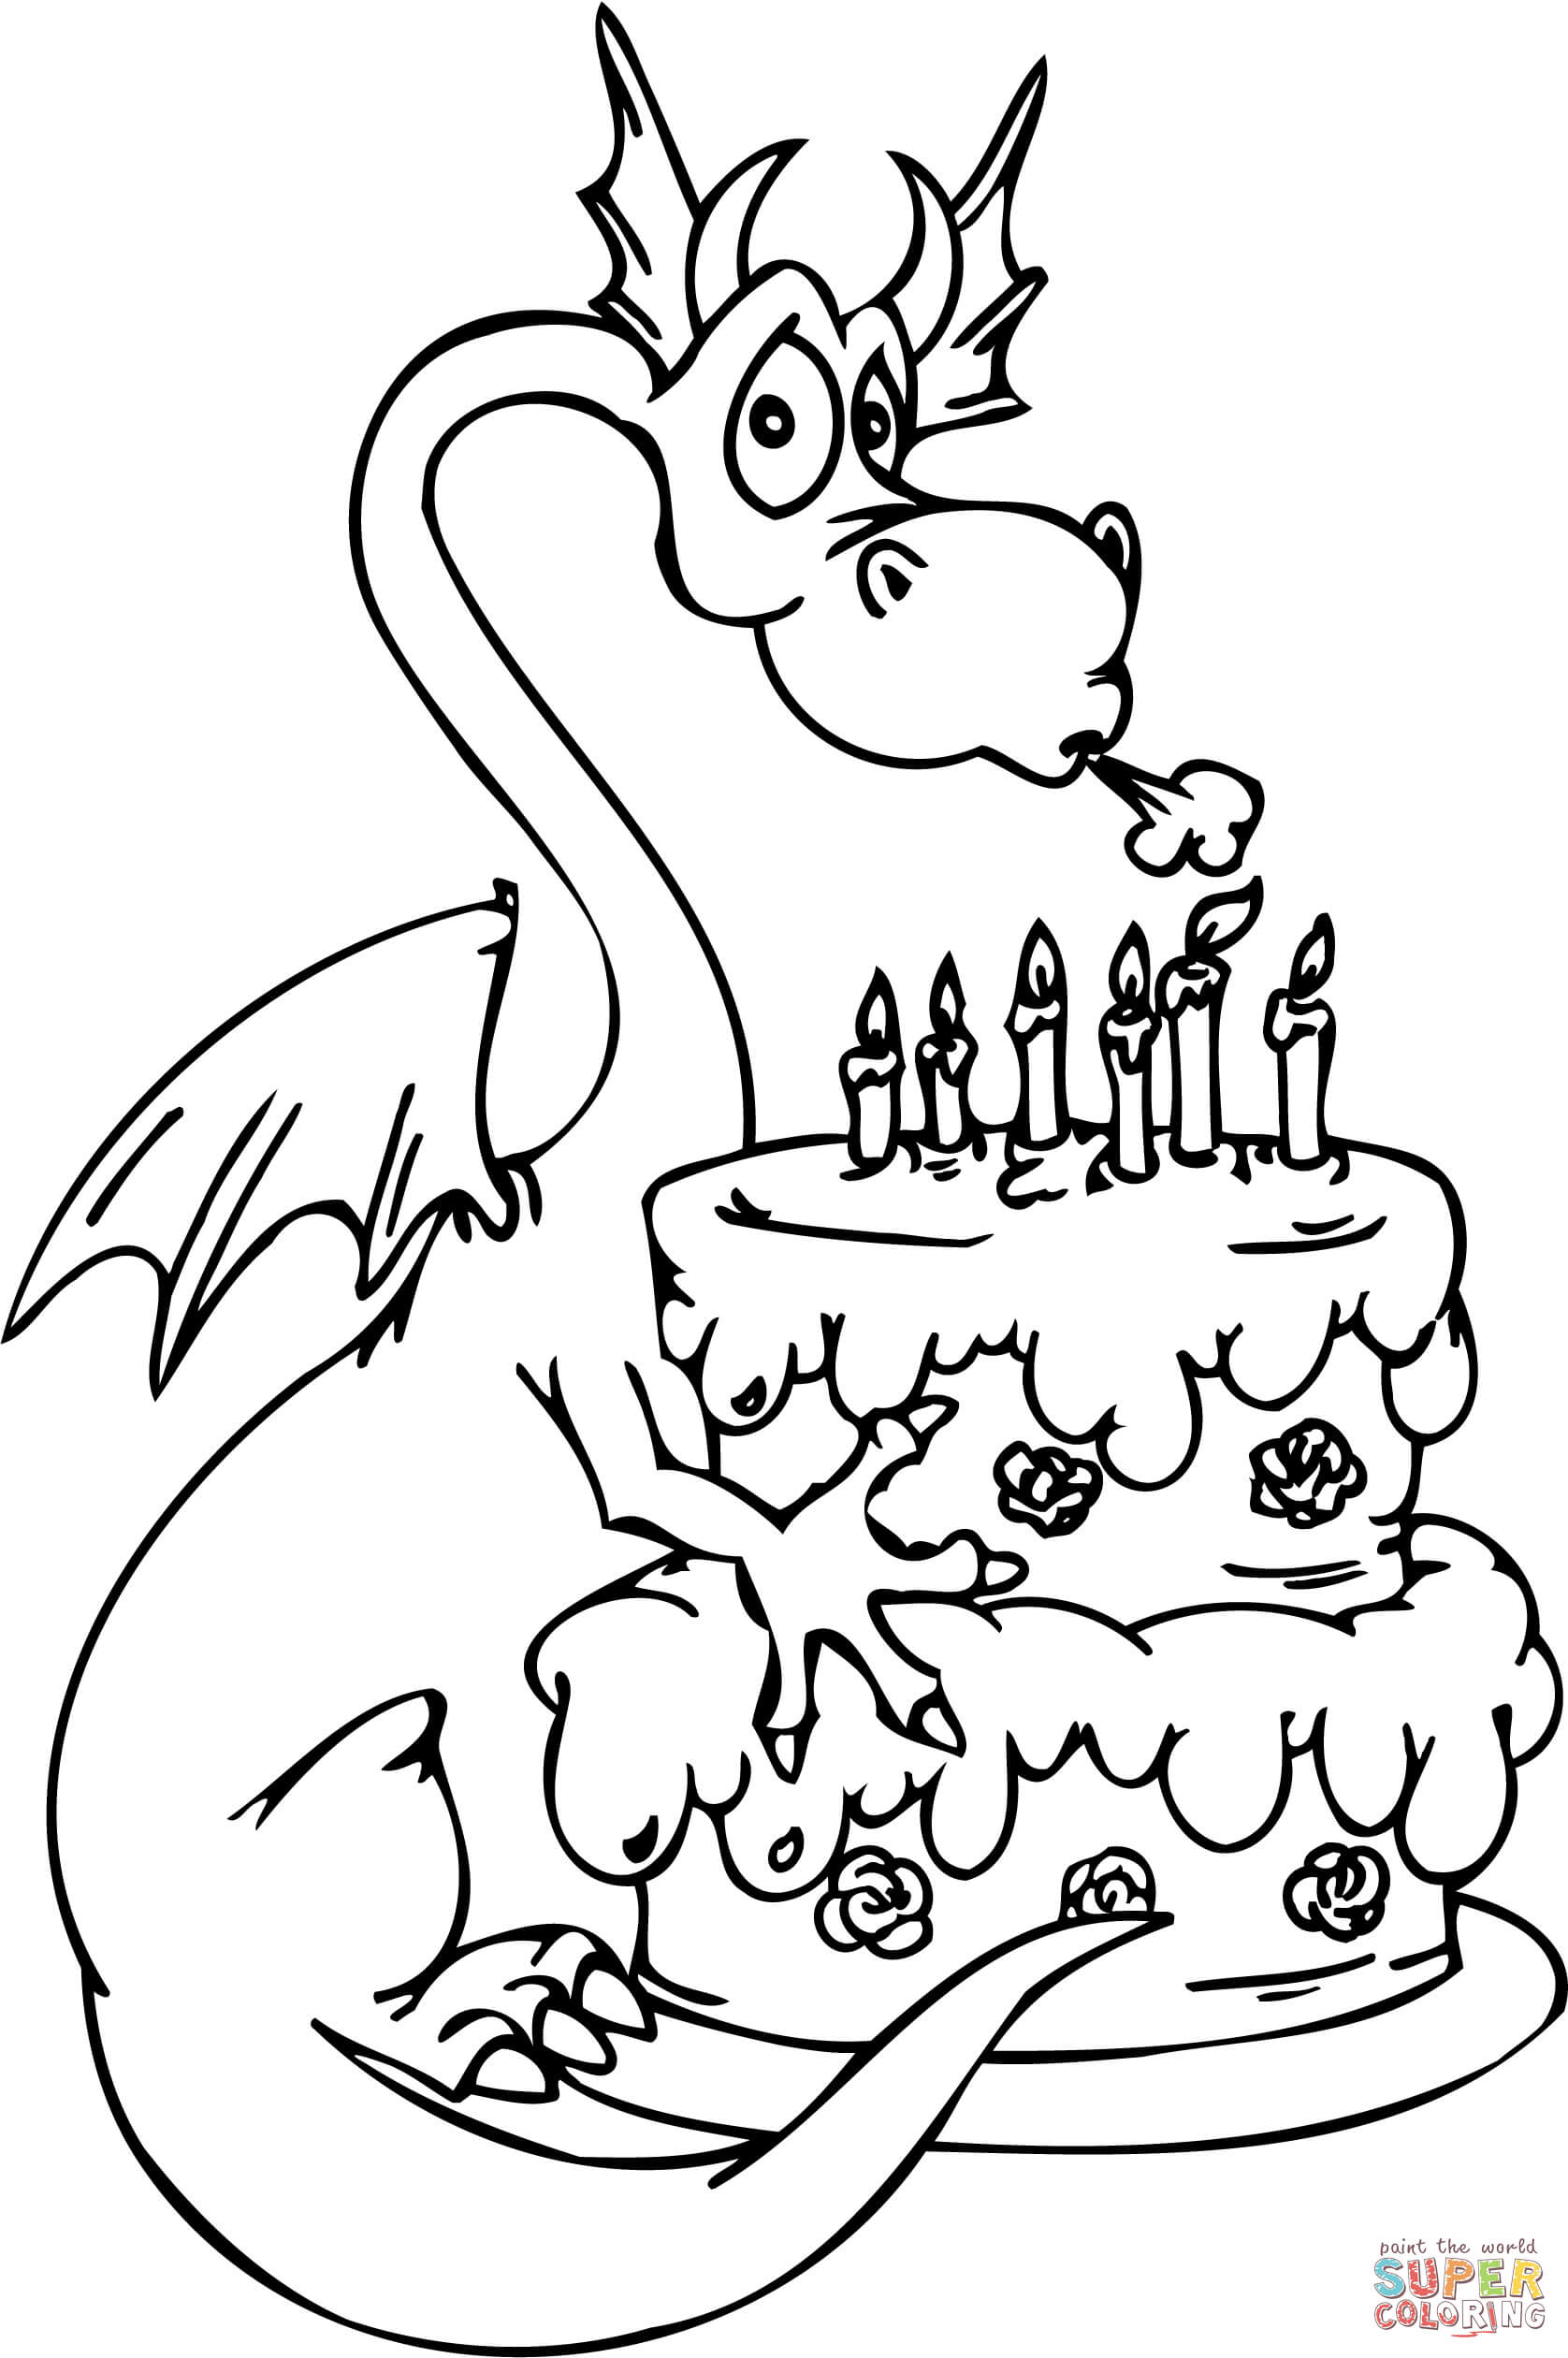 1676x2520 Dragon With Happy Birthday Cake Coloring Page Free Printable